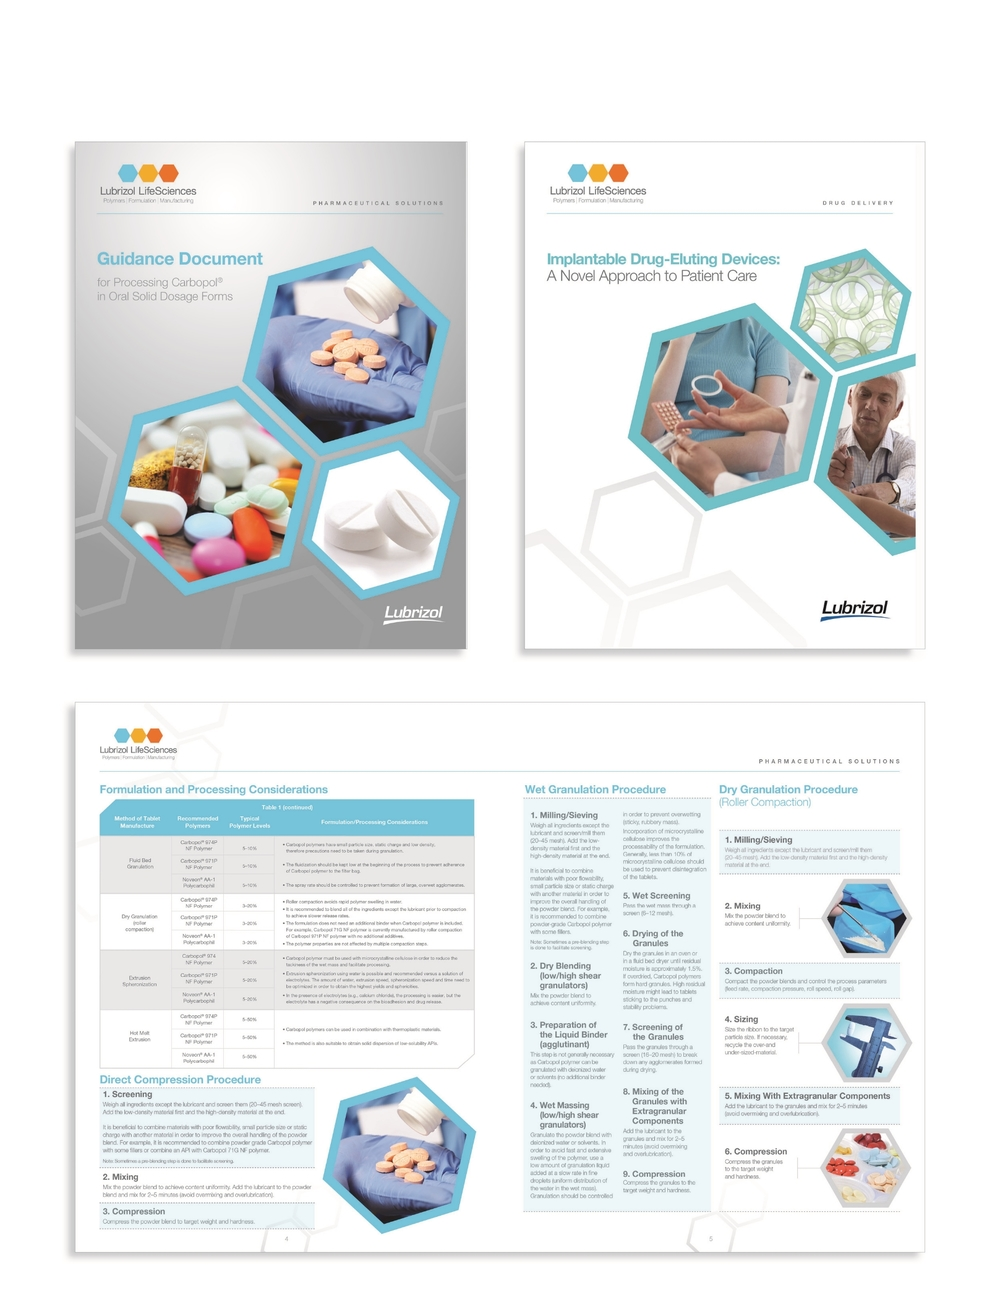 Redesign of Lubrizol LifeSciences capabilities brochures and sell sheets materials